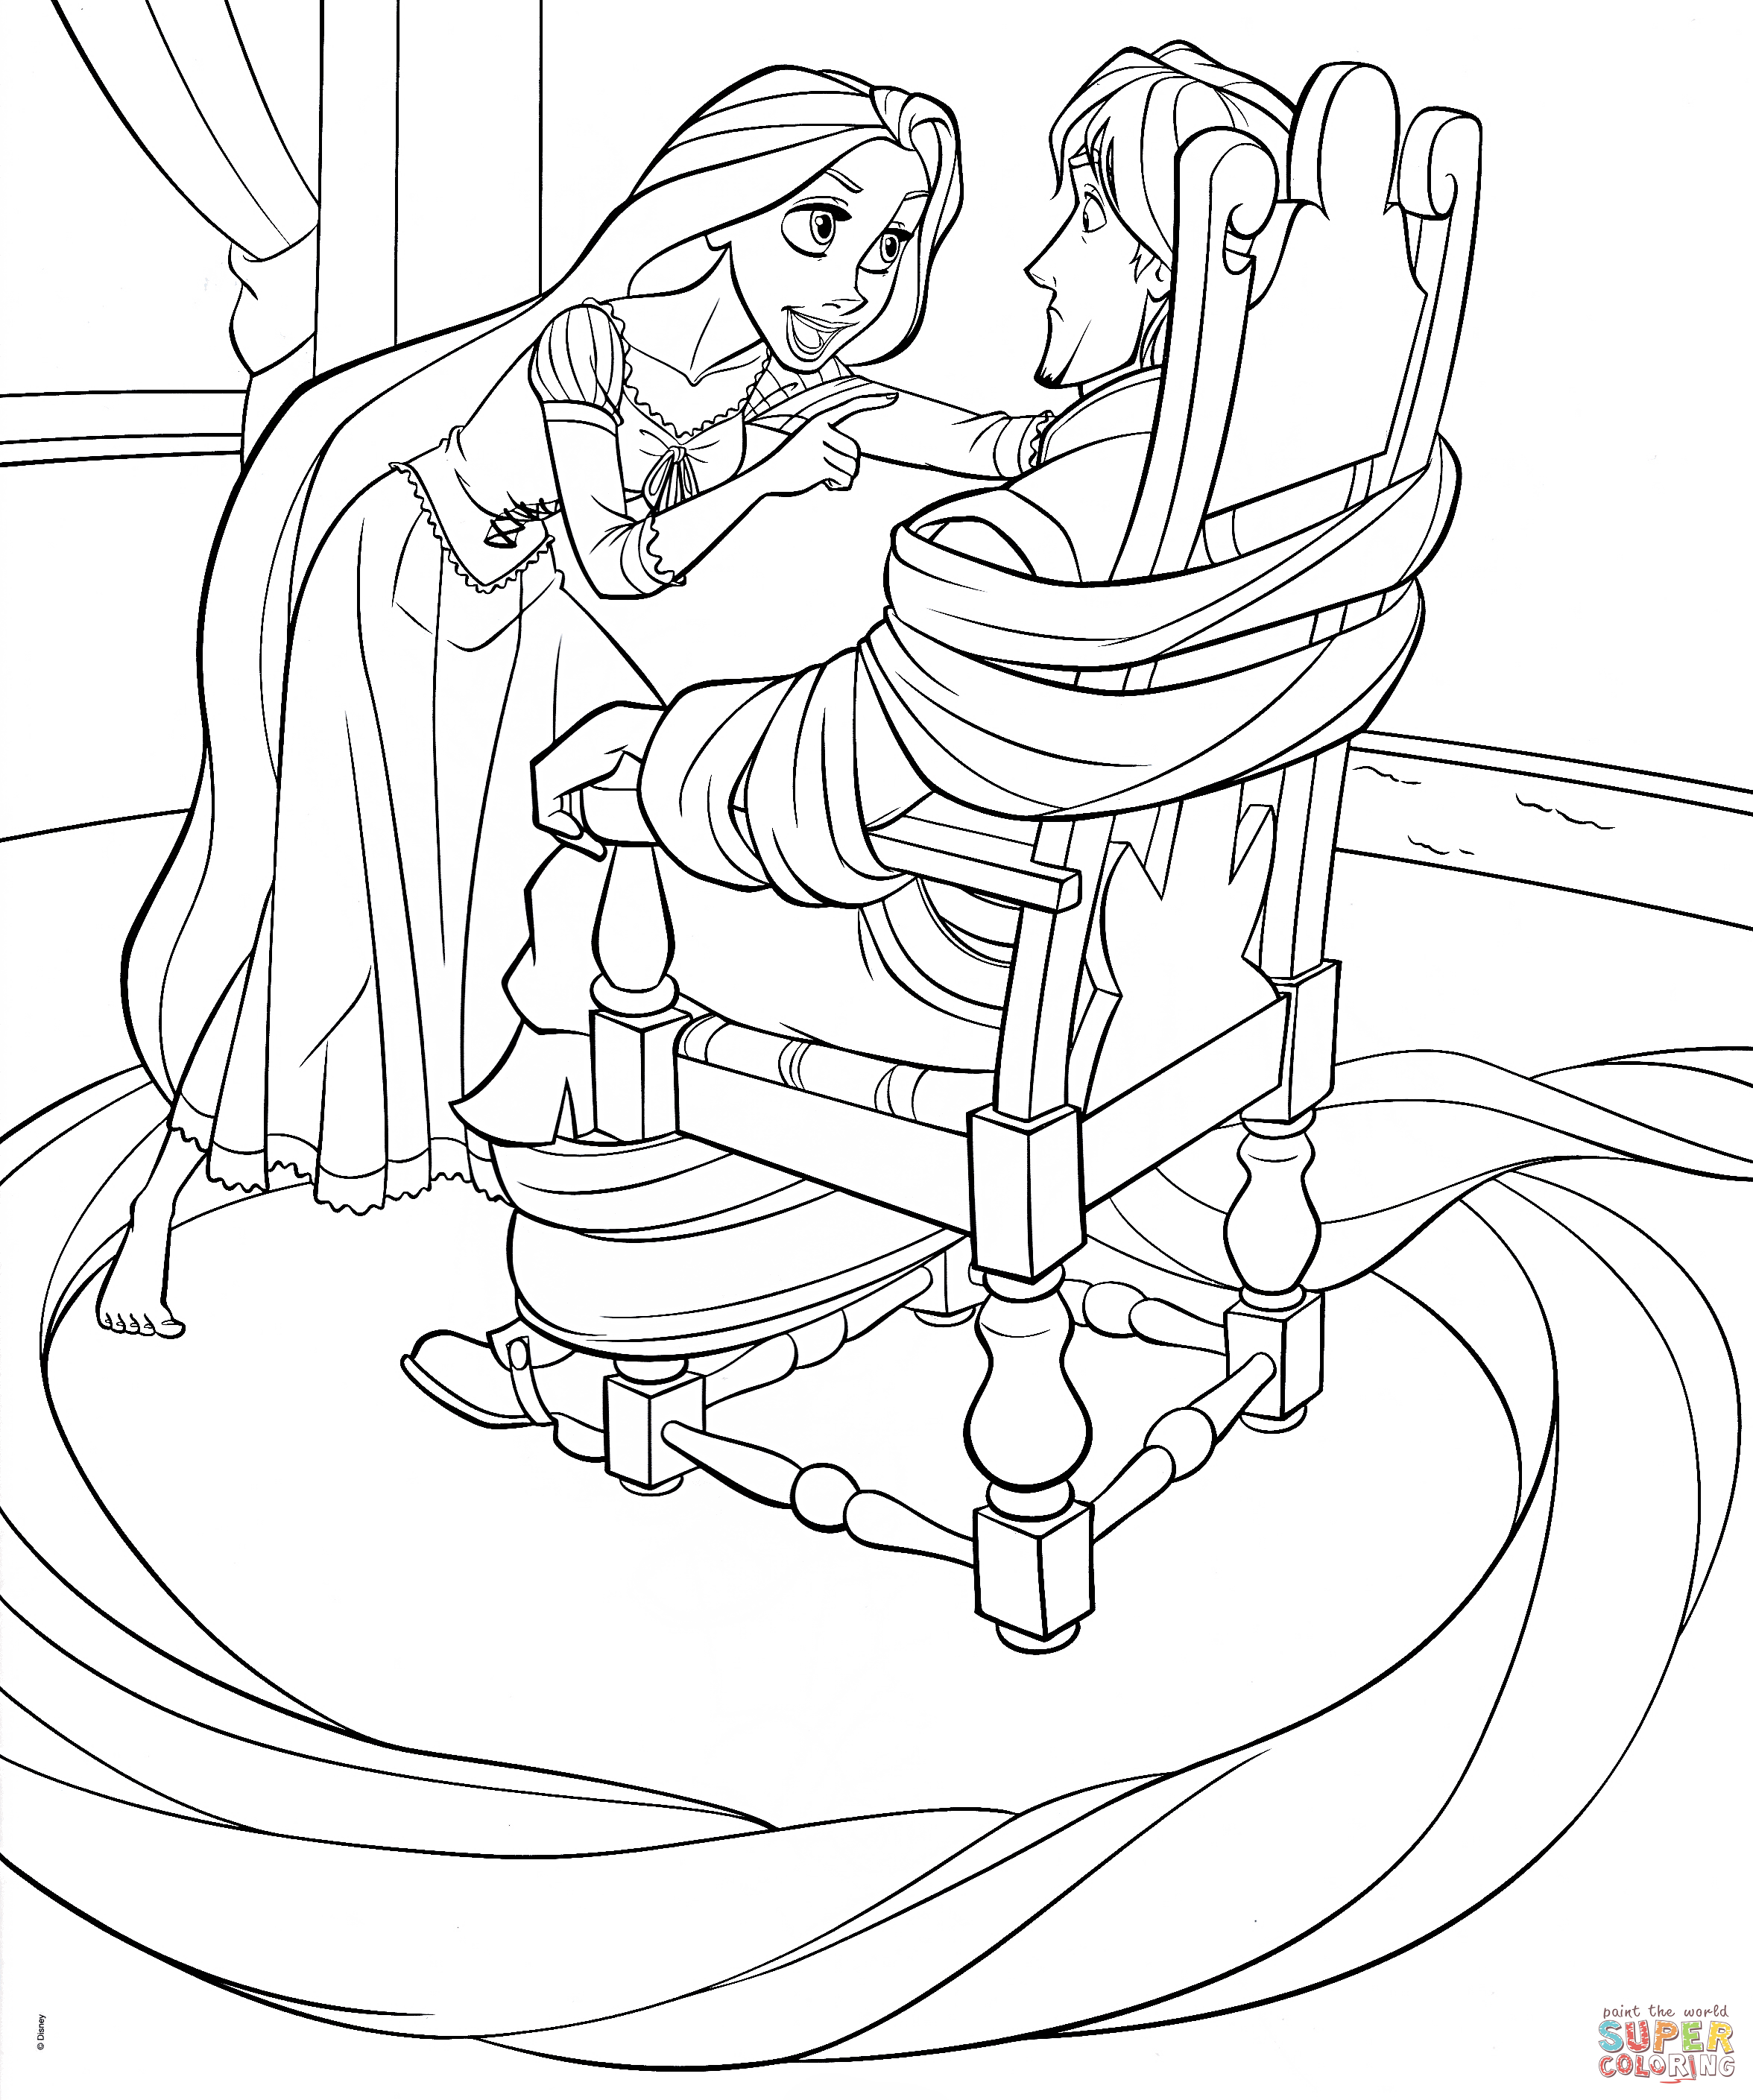 tangled pictures to colour free printable tangled coloring pages for kids cool2bkids colour pictures tangled to